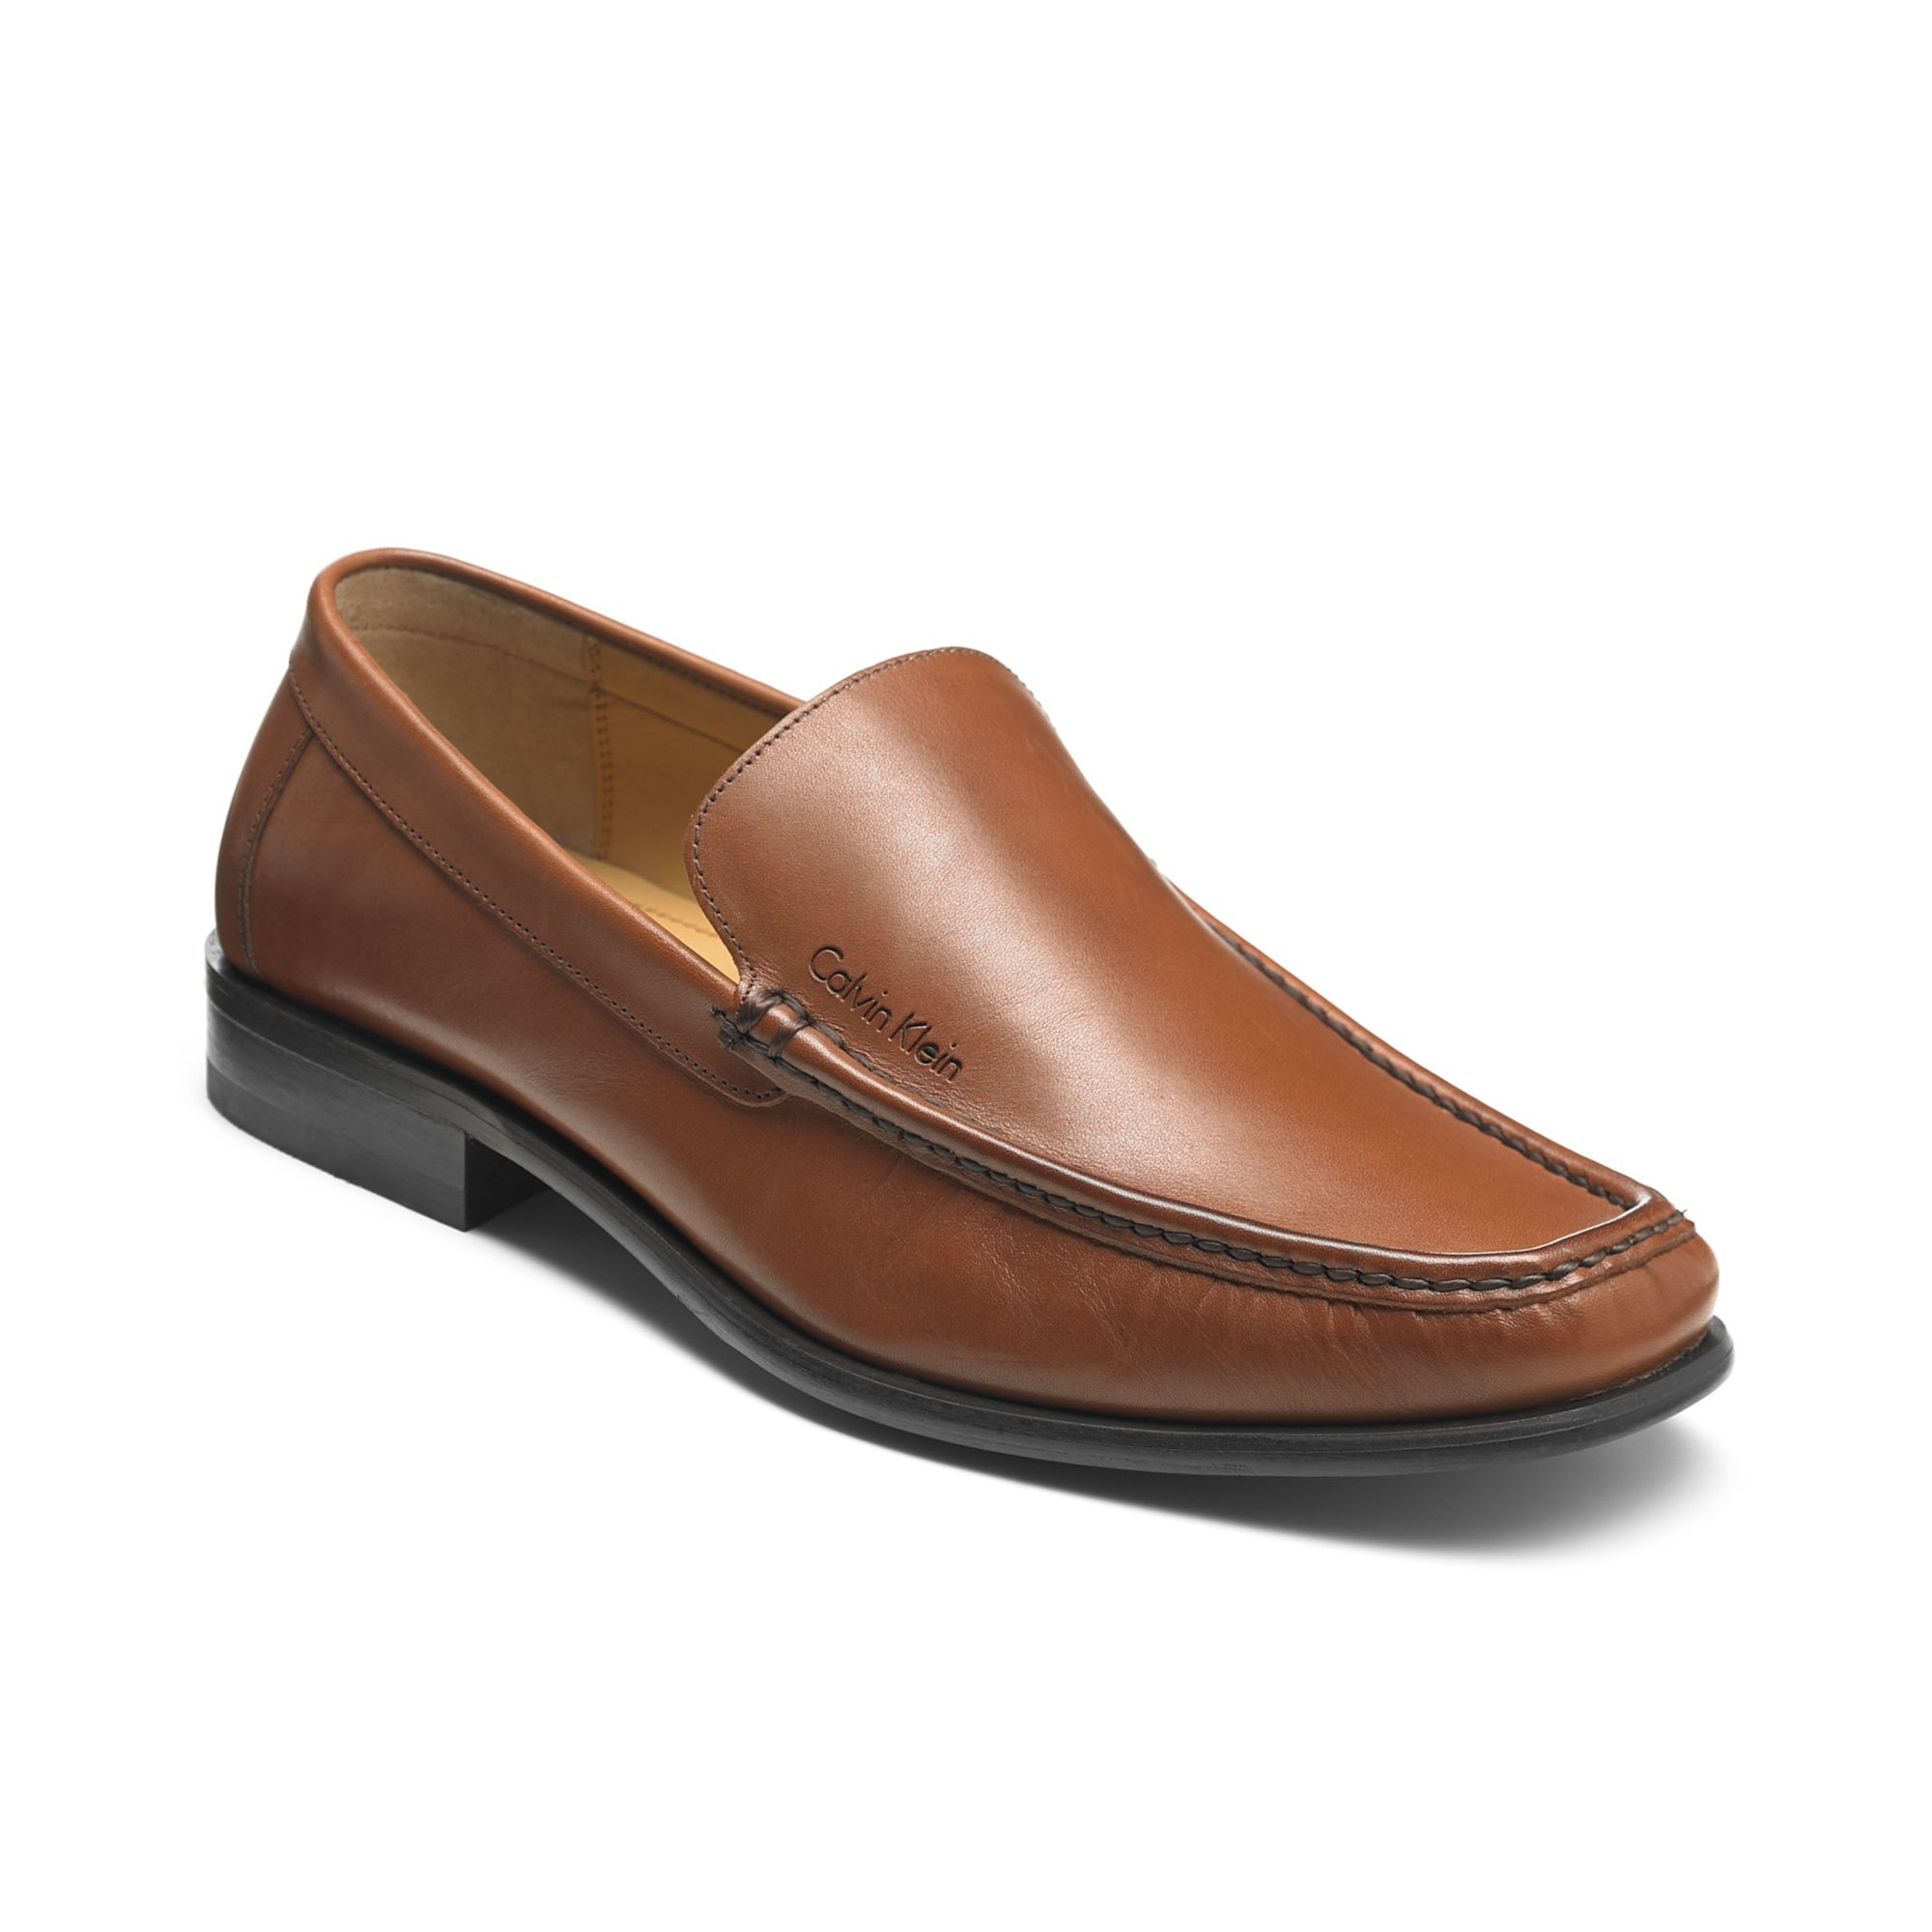 browns buddhist single men Mens brown monk strap shoes ($2499 - $5000): 30 of 205874 items - shop mens brown monk strap shoes from all your favorite stores & find huge savings up to 80% off mens brown monk strap.